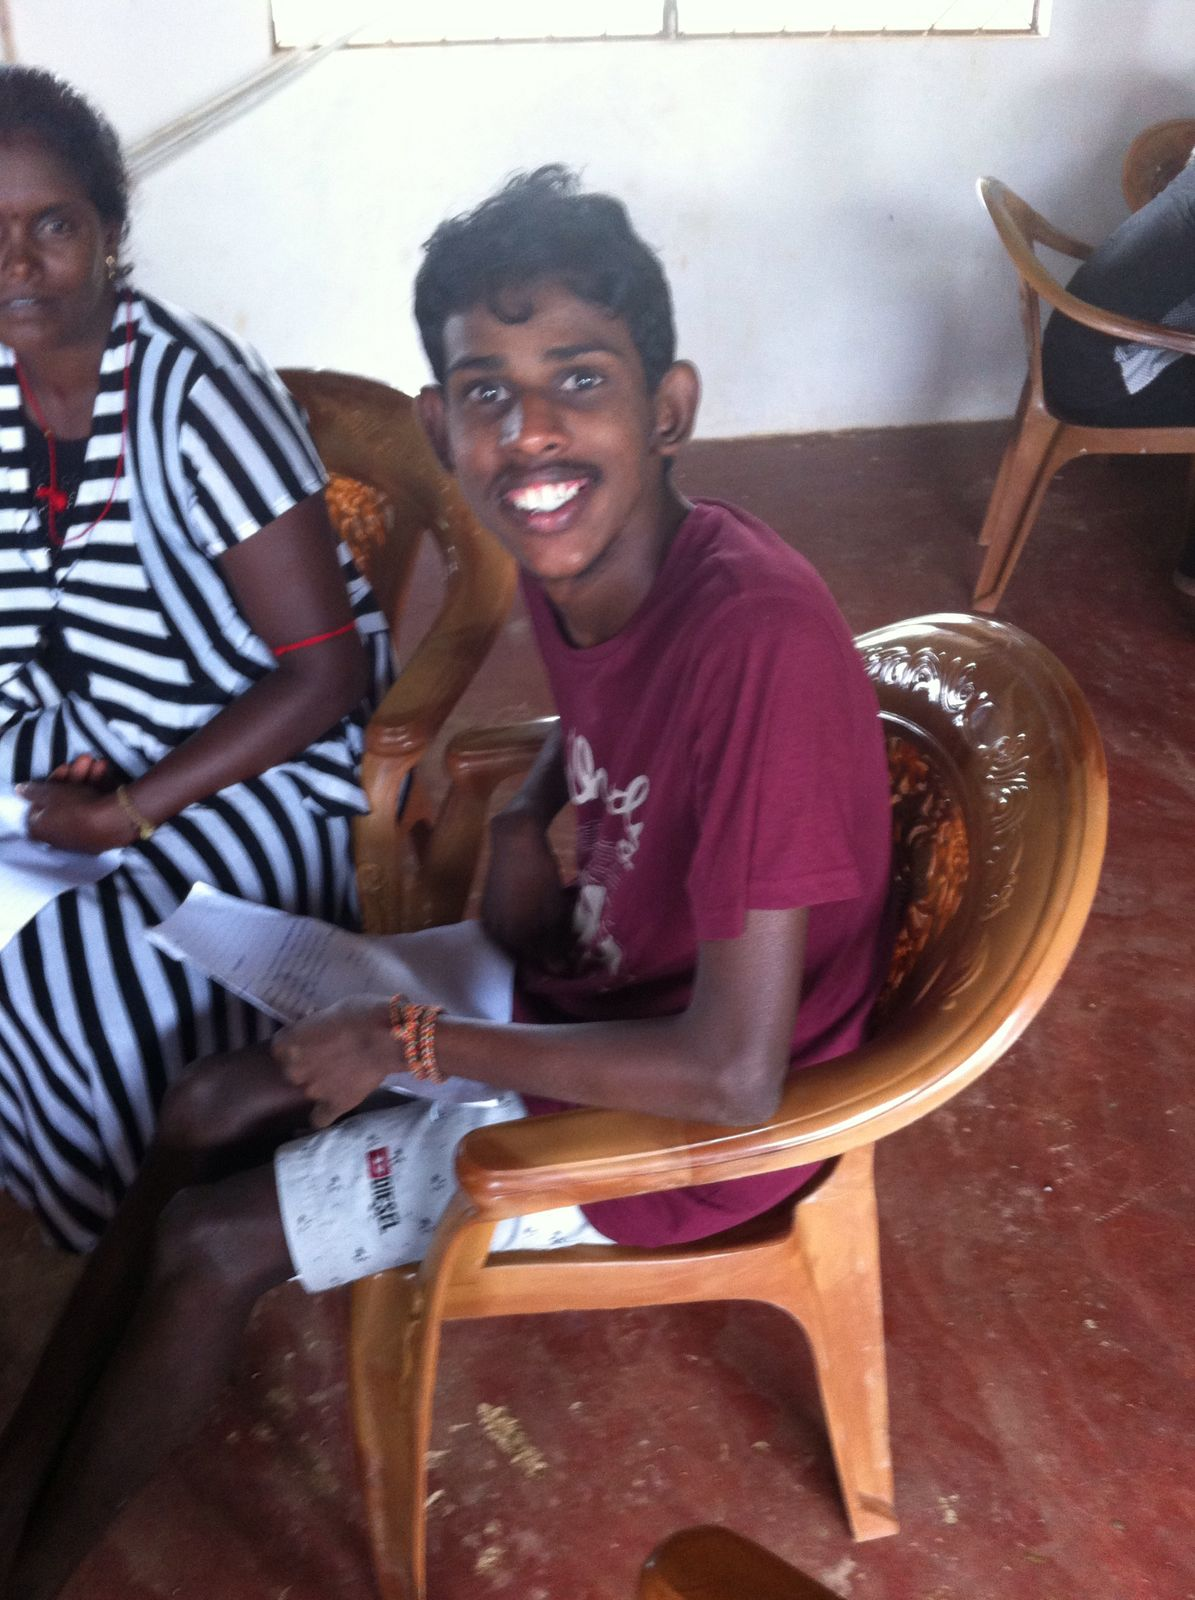 One of our special needs friends in our village of Puddumuripukkalam near Kilinochchi